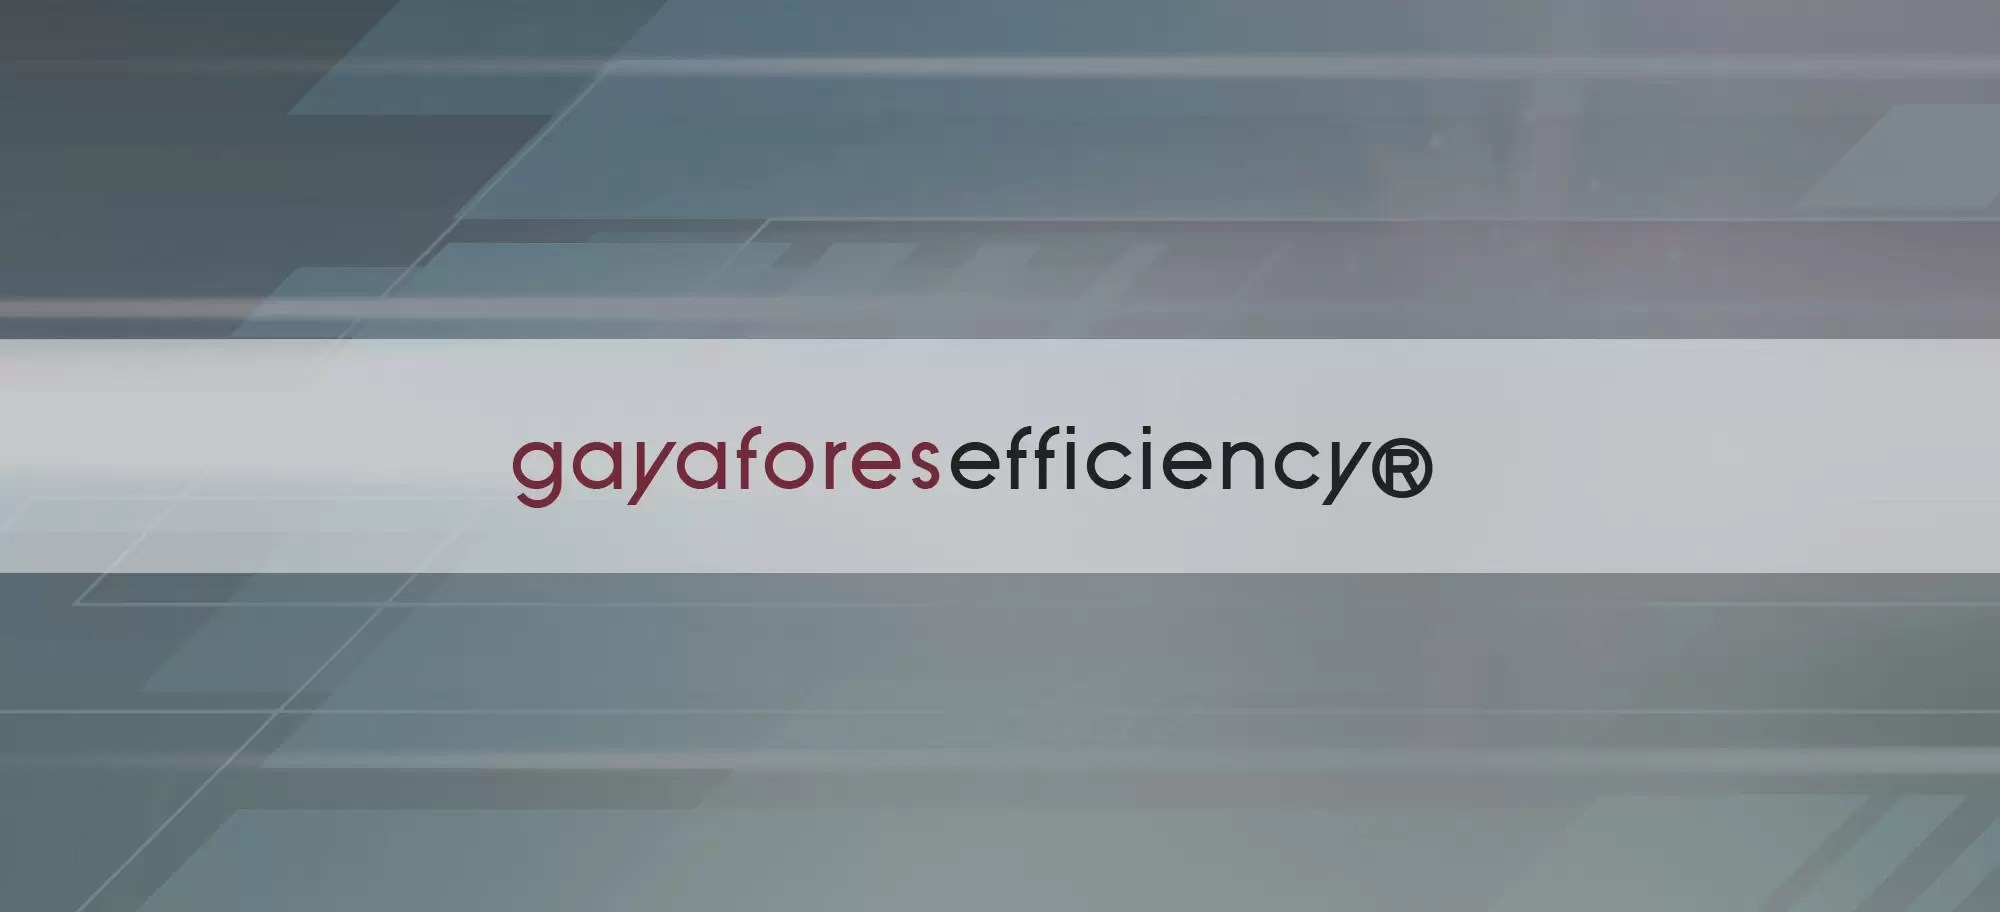 Cabecera Efficiency